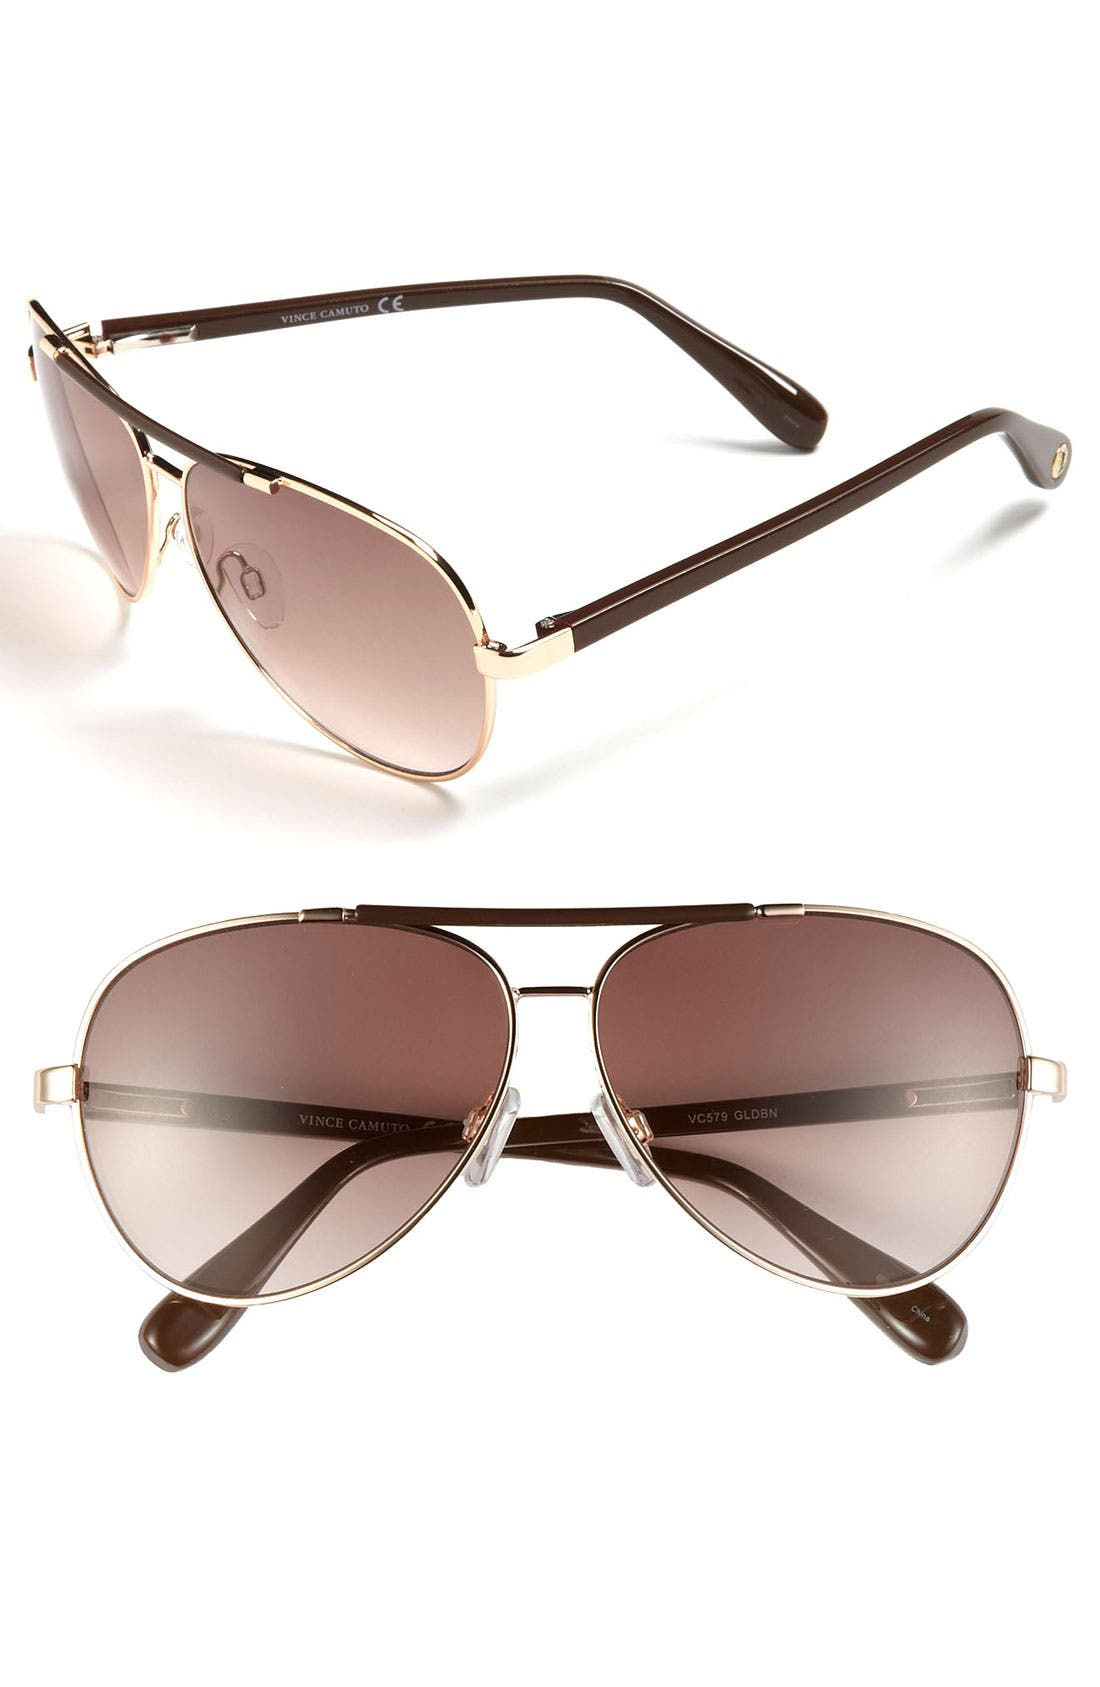 Main Image - Vince Camuto 60mm Aviator Sunglasses (Online Only)